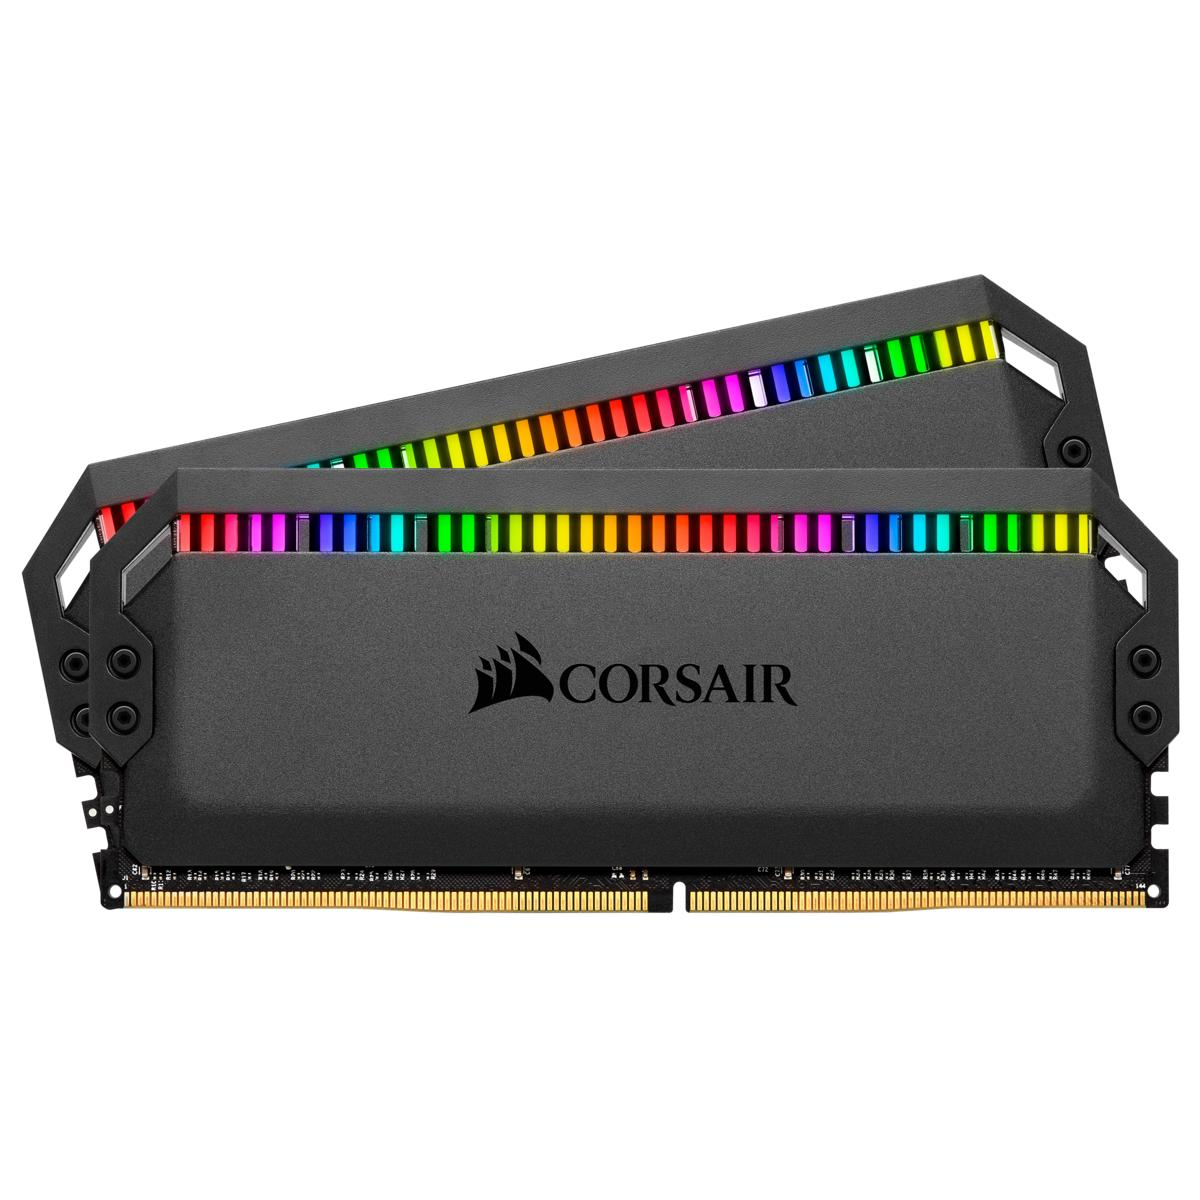 Ram Corsair Dominator Platinum RGB 16GB (2 x 8GB) DDR4 Bus 3200 C16 Optimized for AMD Nhật Bản